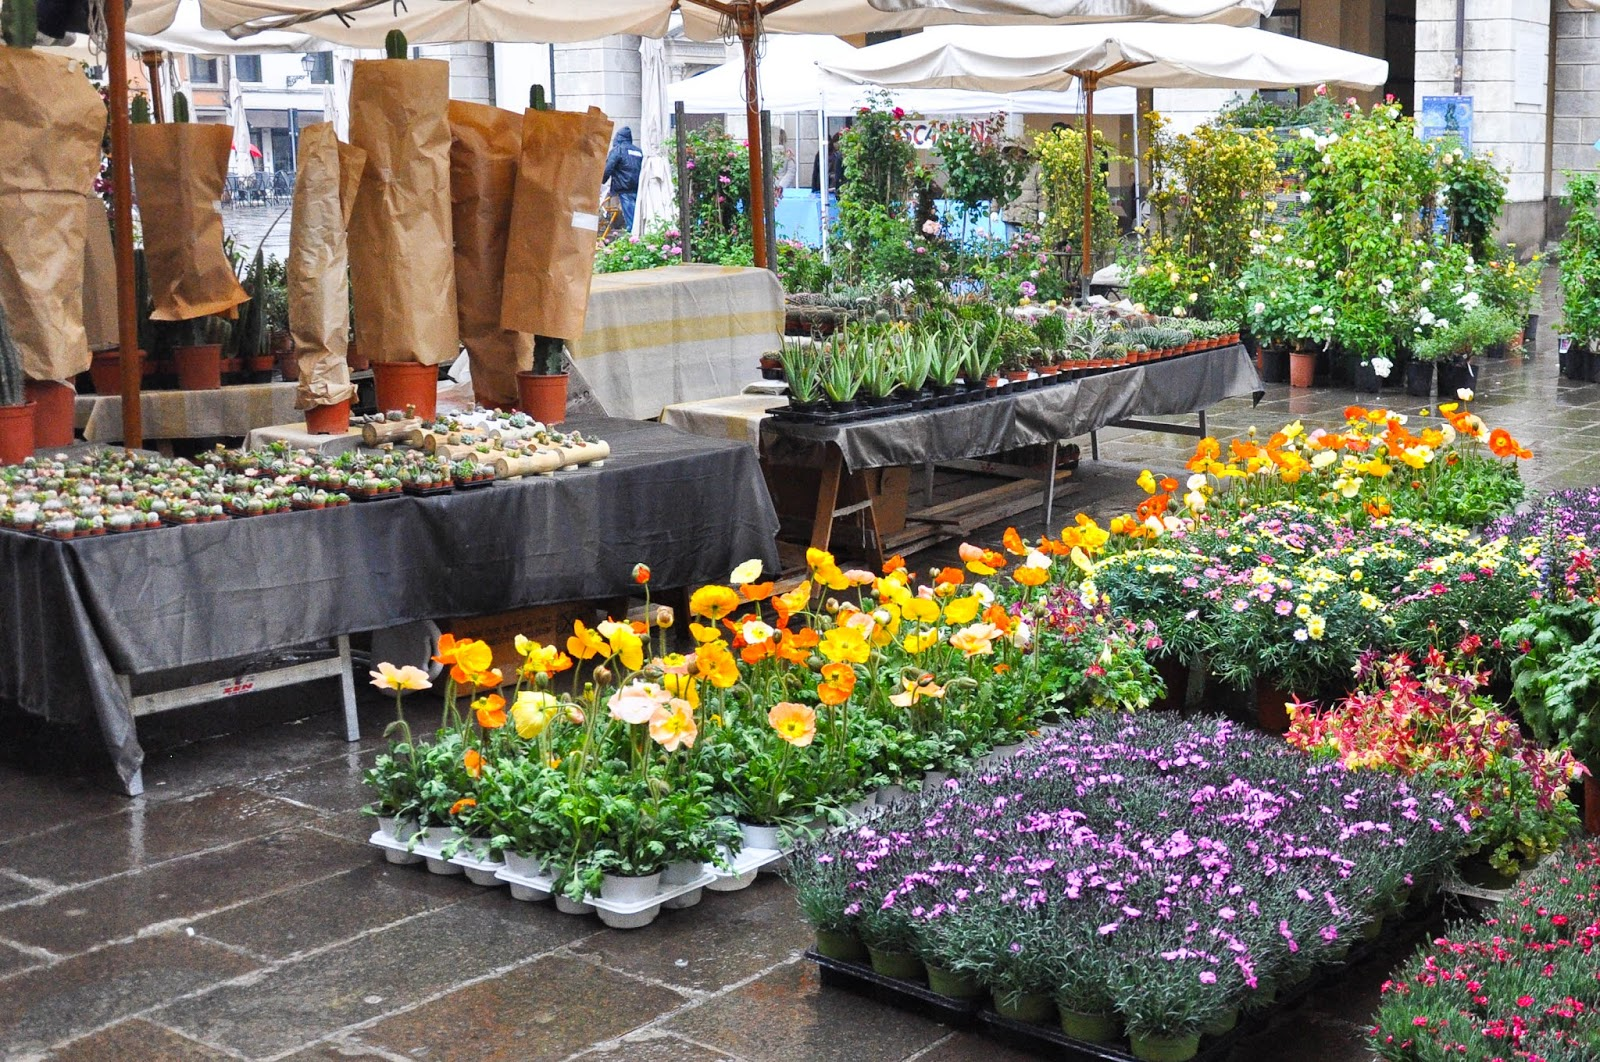 Setting up the flower stalls, 7th Edition of 'Fiori, colori, e...' - Floriculture market show, Vicenza, Italy